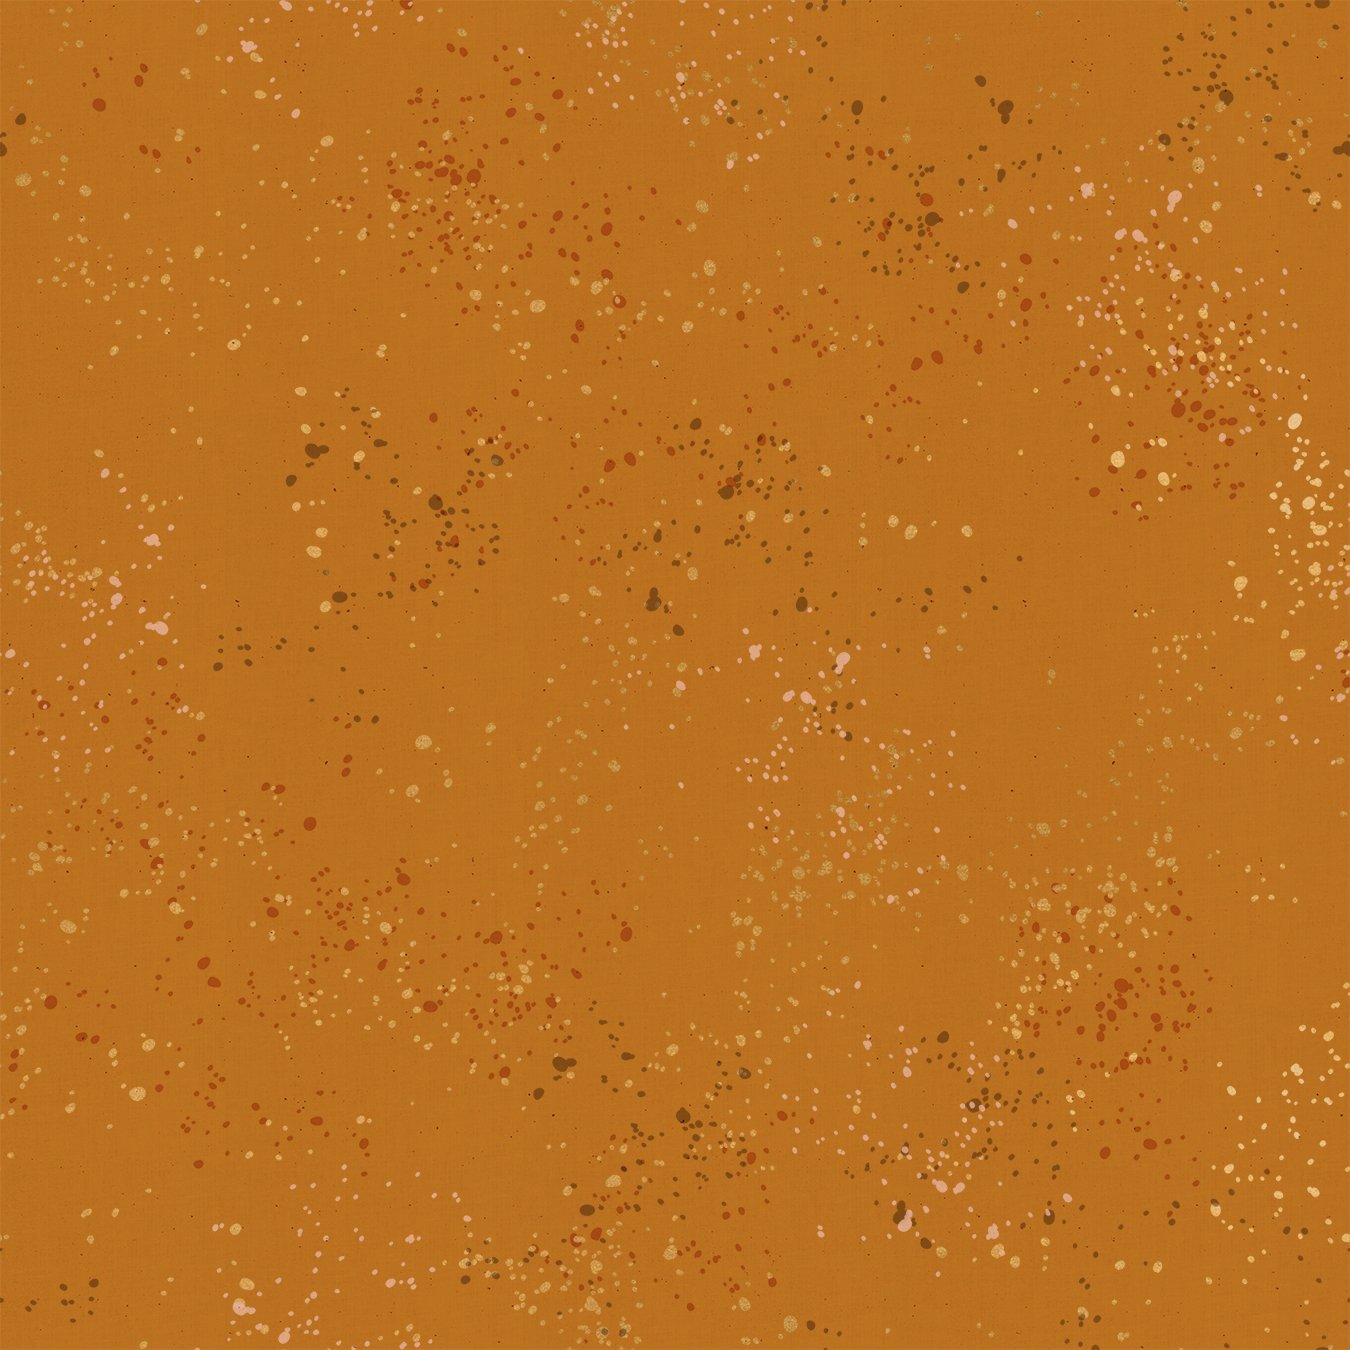 Speckled in Gold Metallic Earth